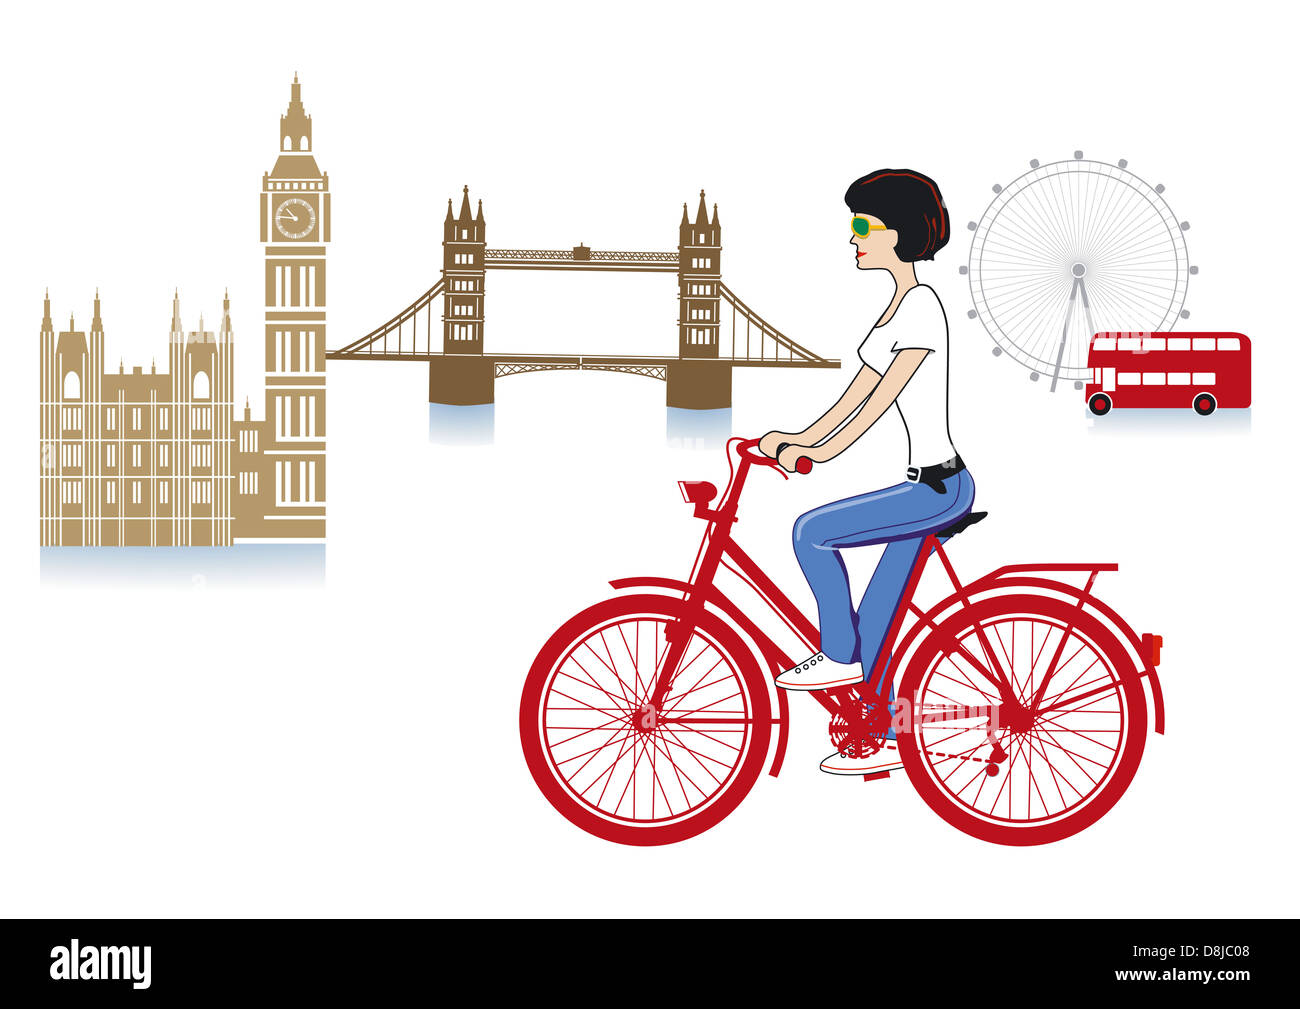 London on a bicycle - Stock Image